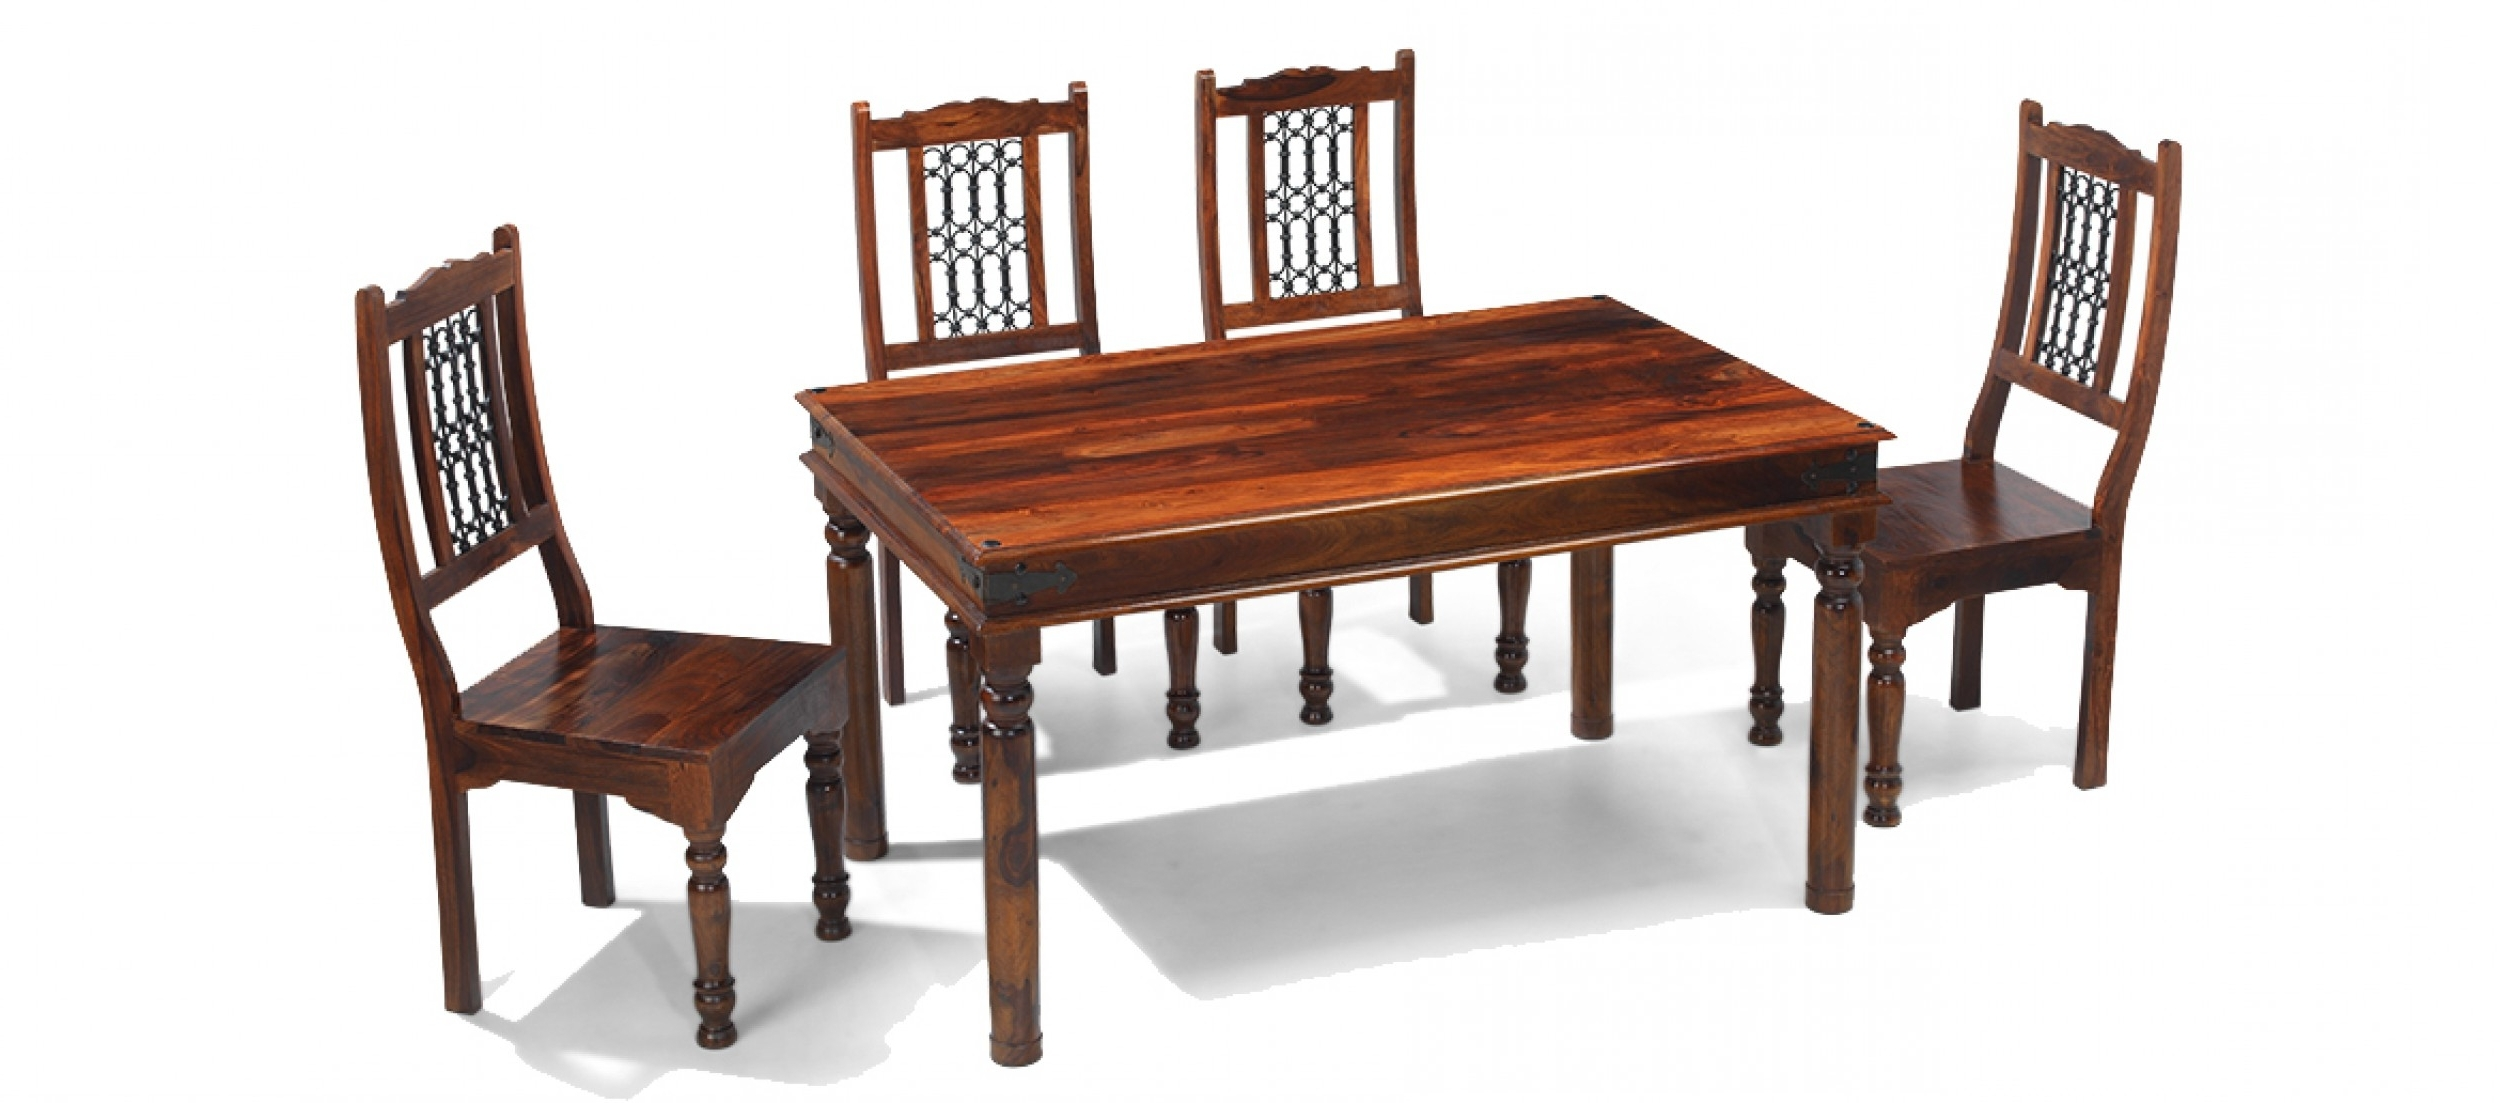 Quercus Living For Popular Sheesham Dining Tables And Chairs (View 15 of 25)